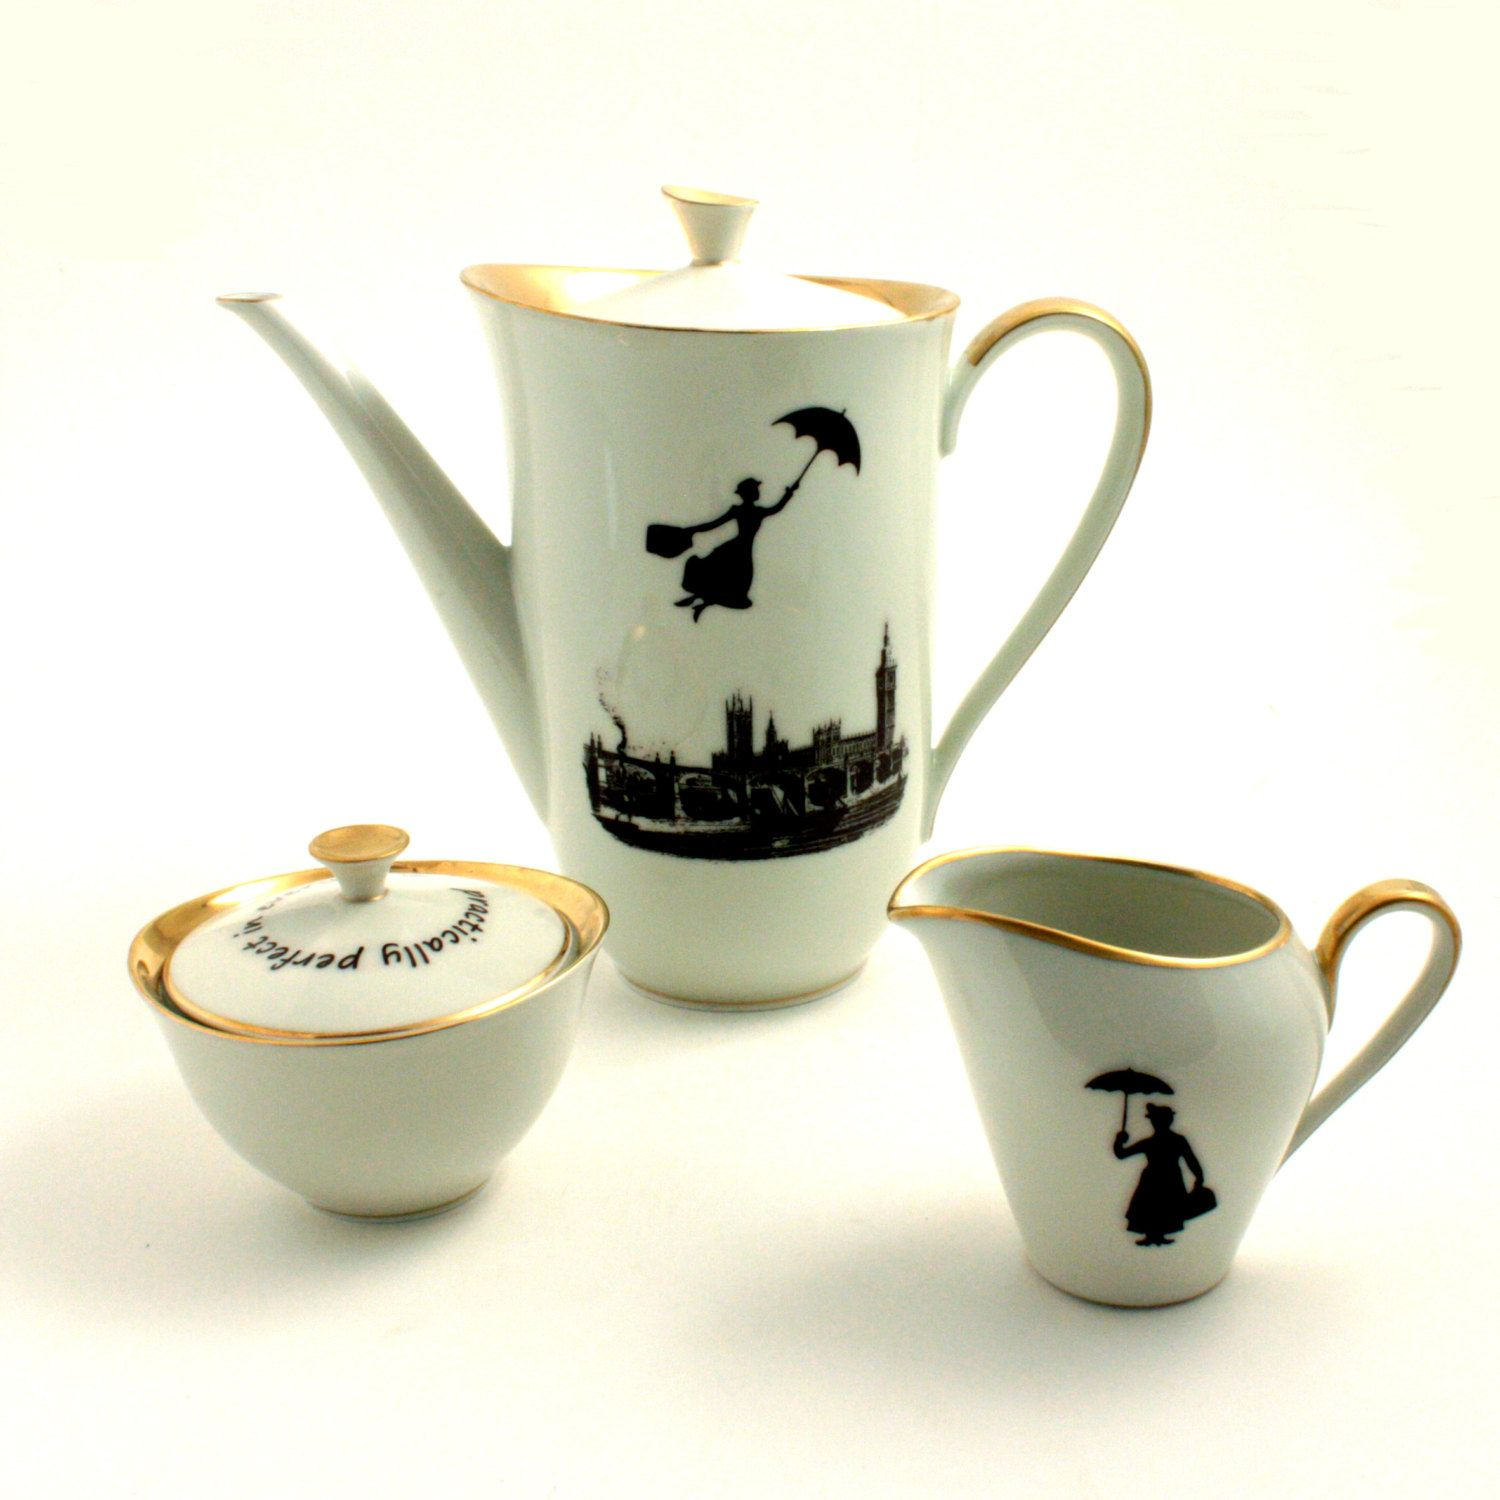 Mary Poppins tea set. By MoreThanPorcelain, etsy. (No way!!)